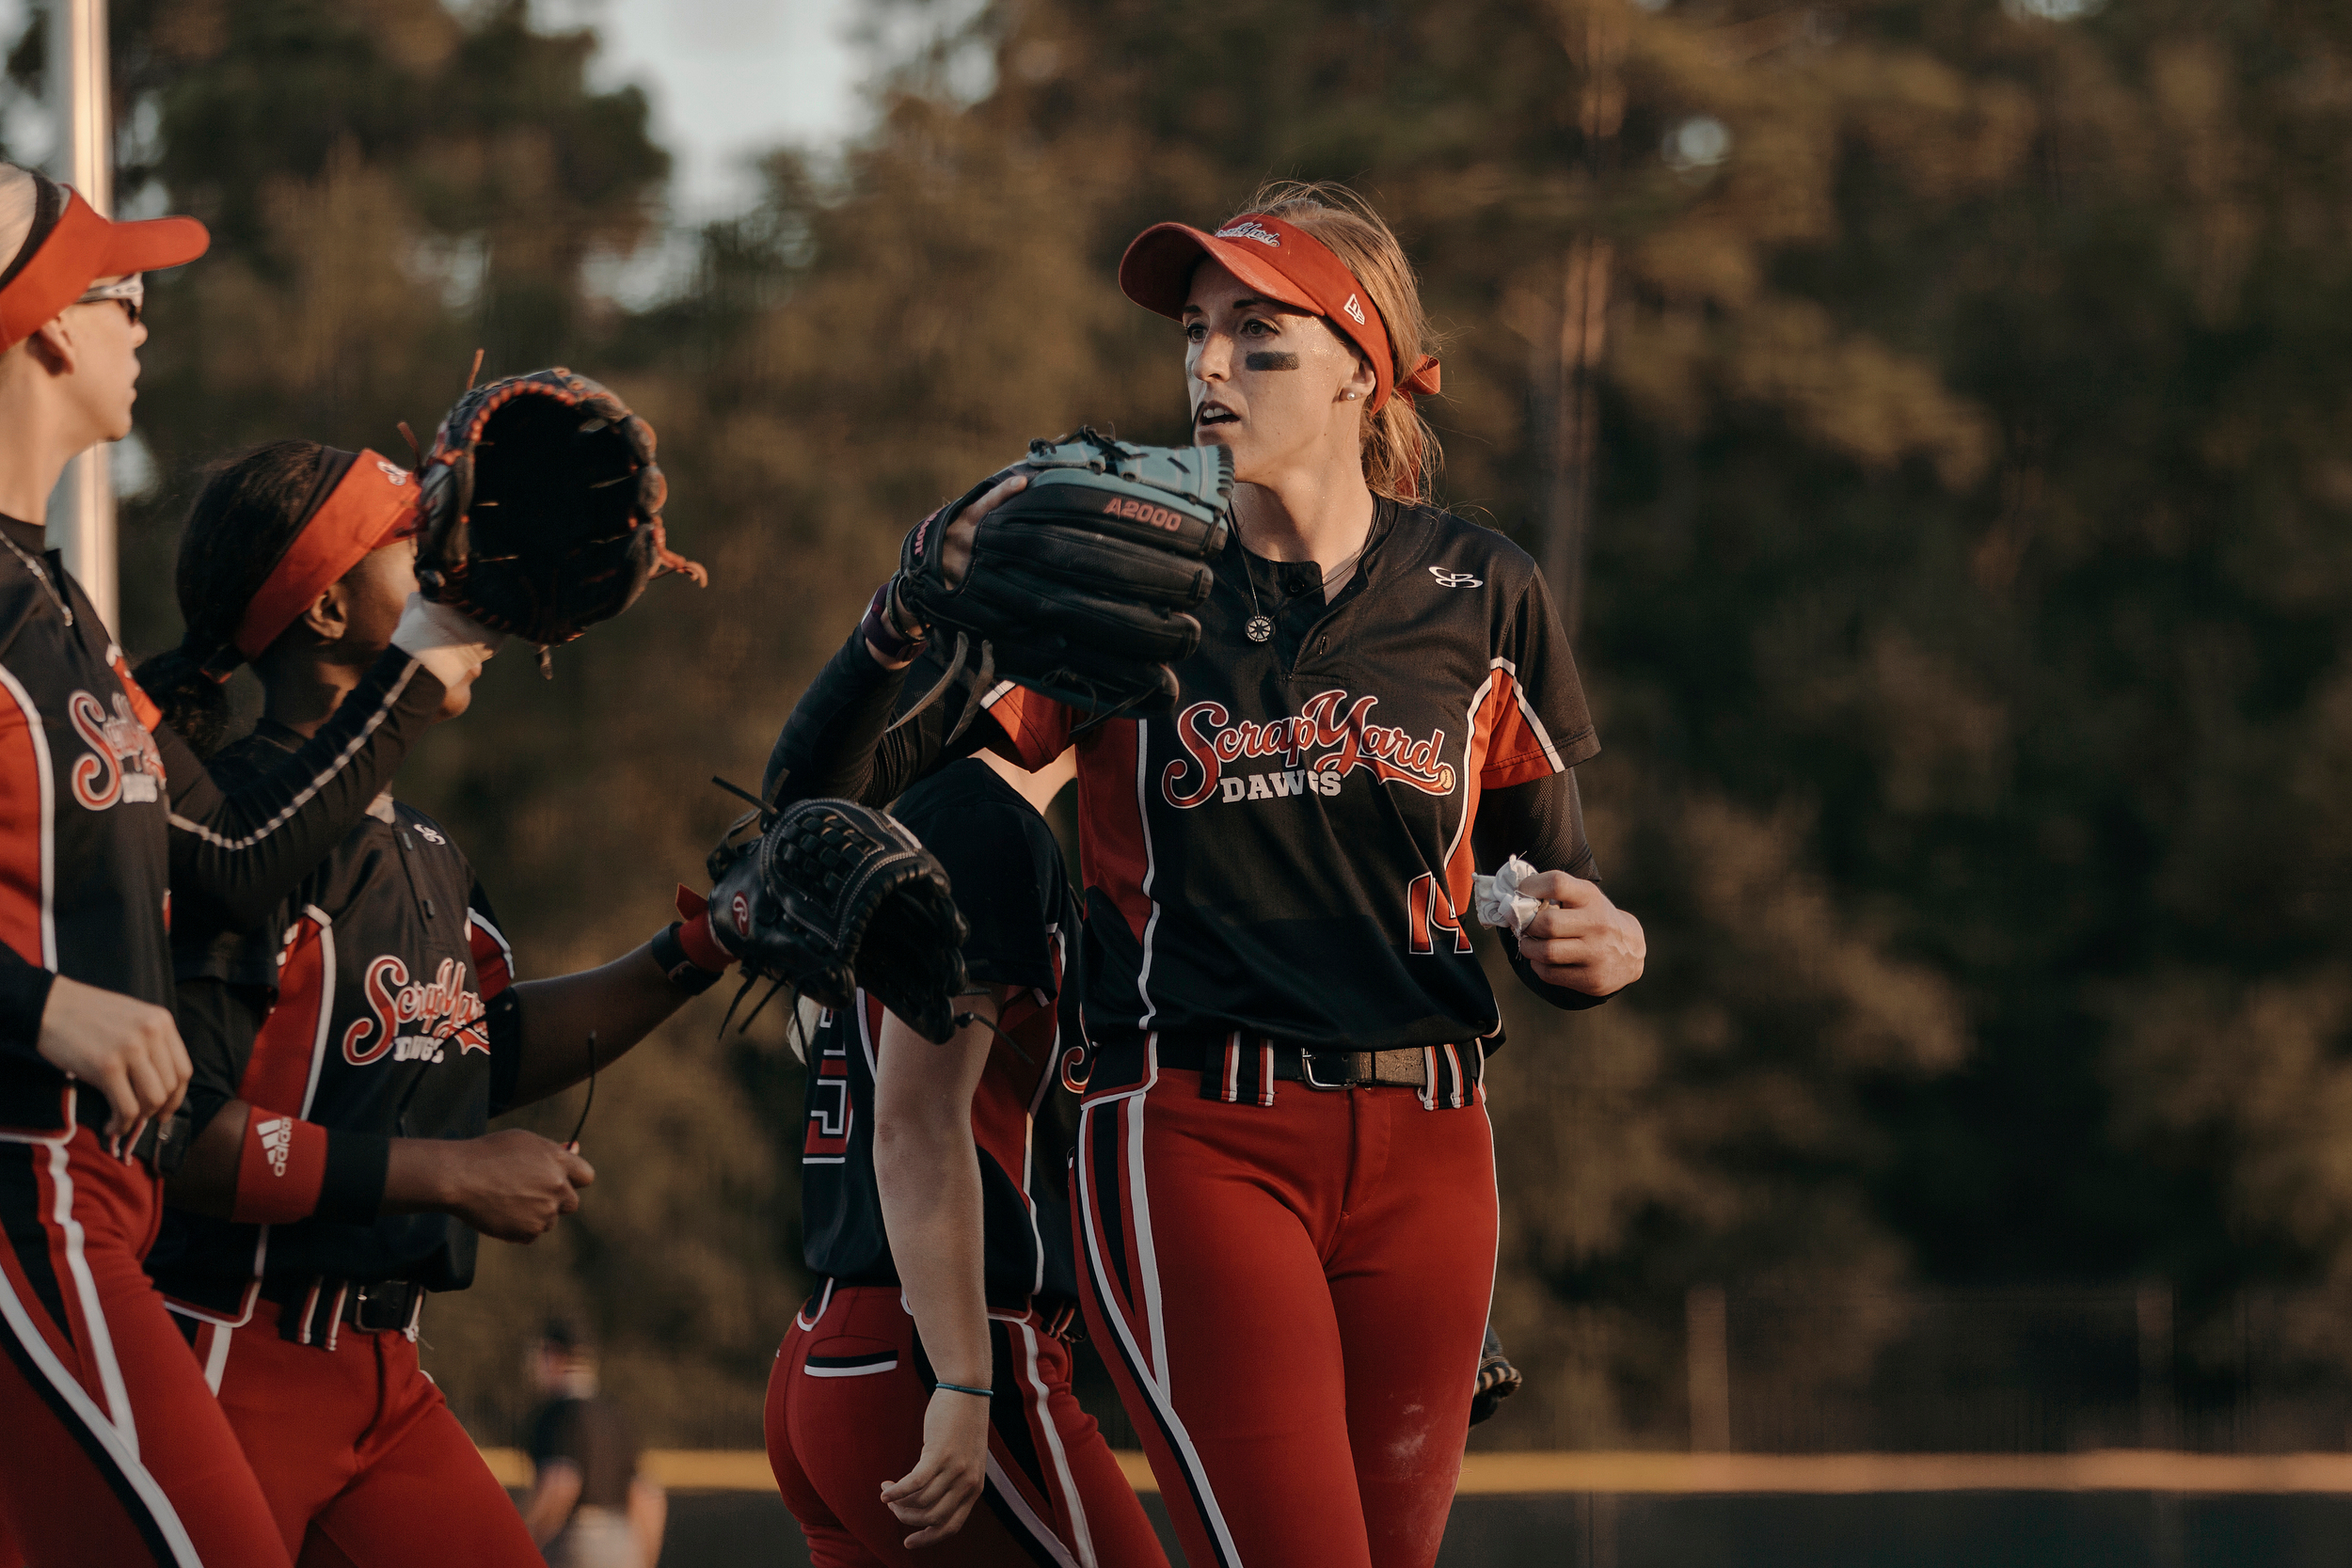 Pitcher, Monica Abbott, congratulates teammates following a play. The Scrap Yard Dawgs won the game 1-0. Todd Spoth for The New York Times.